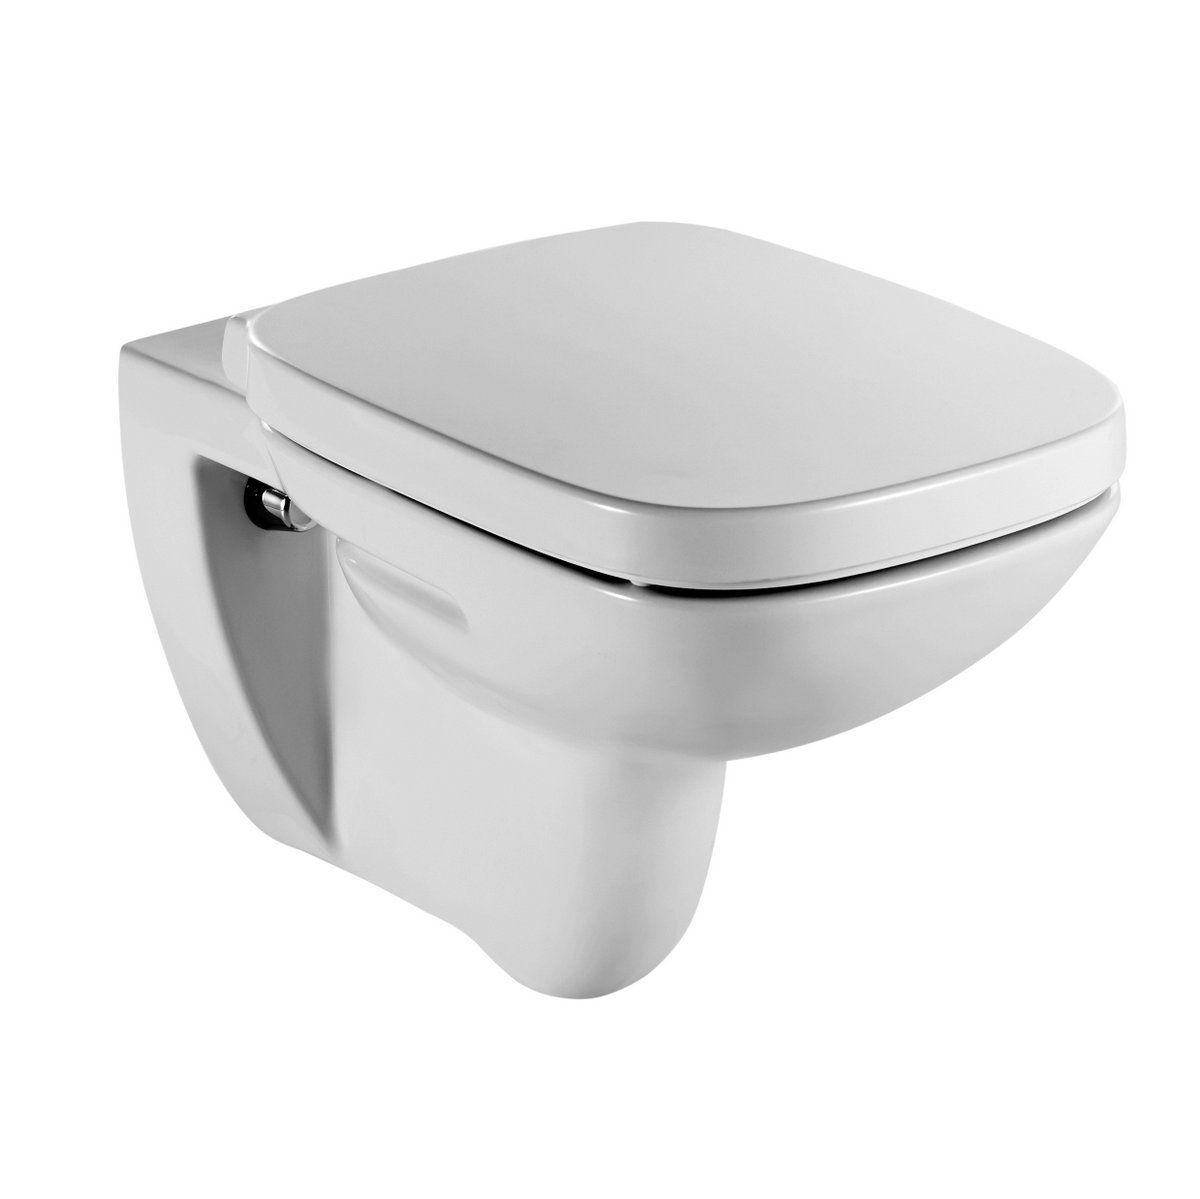 Roca Bathroom Accessories Roca Debba Wall Hung Toilet Uk Bathrooms